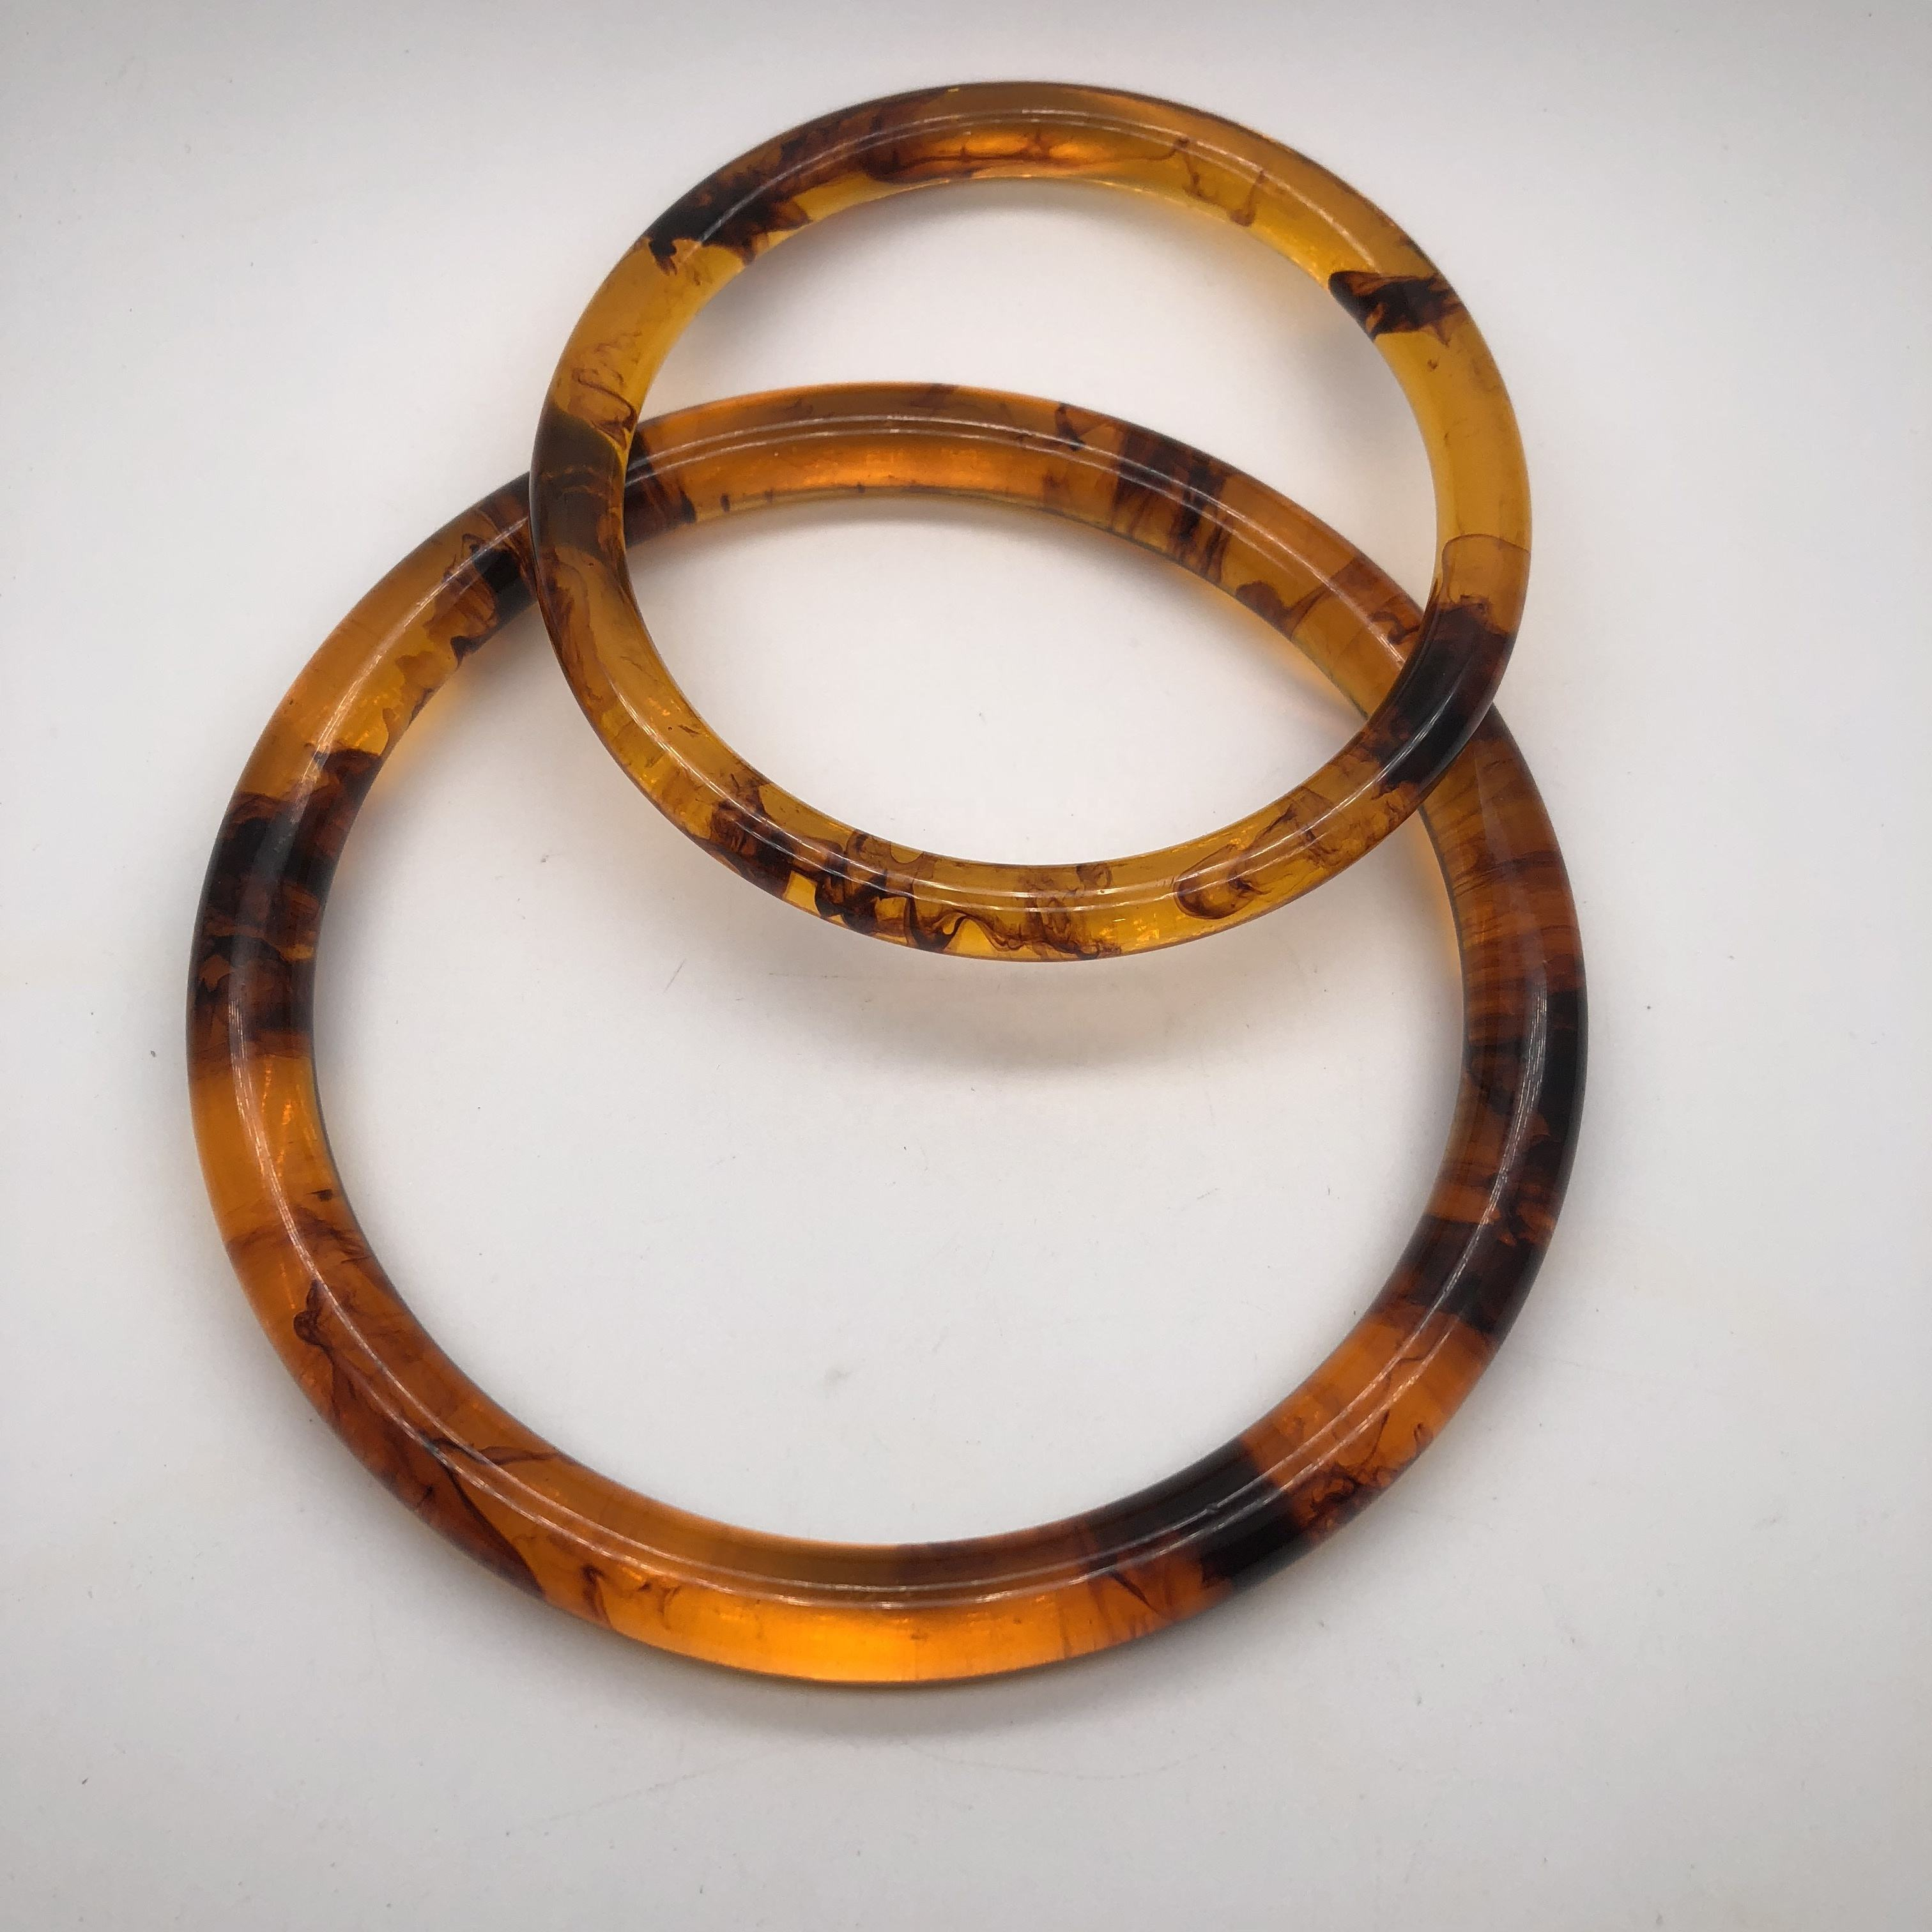 Tortoise shell clutch hand bag handle Resin O-ring and D-ring lucite color handbag parts and garments accessories